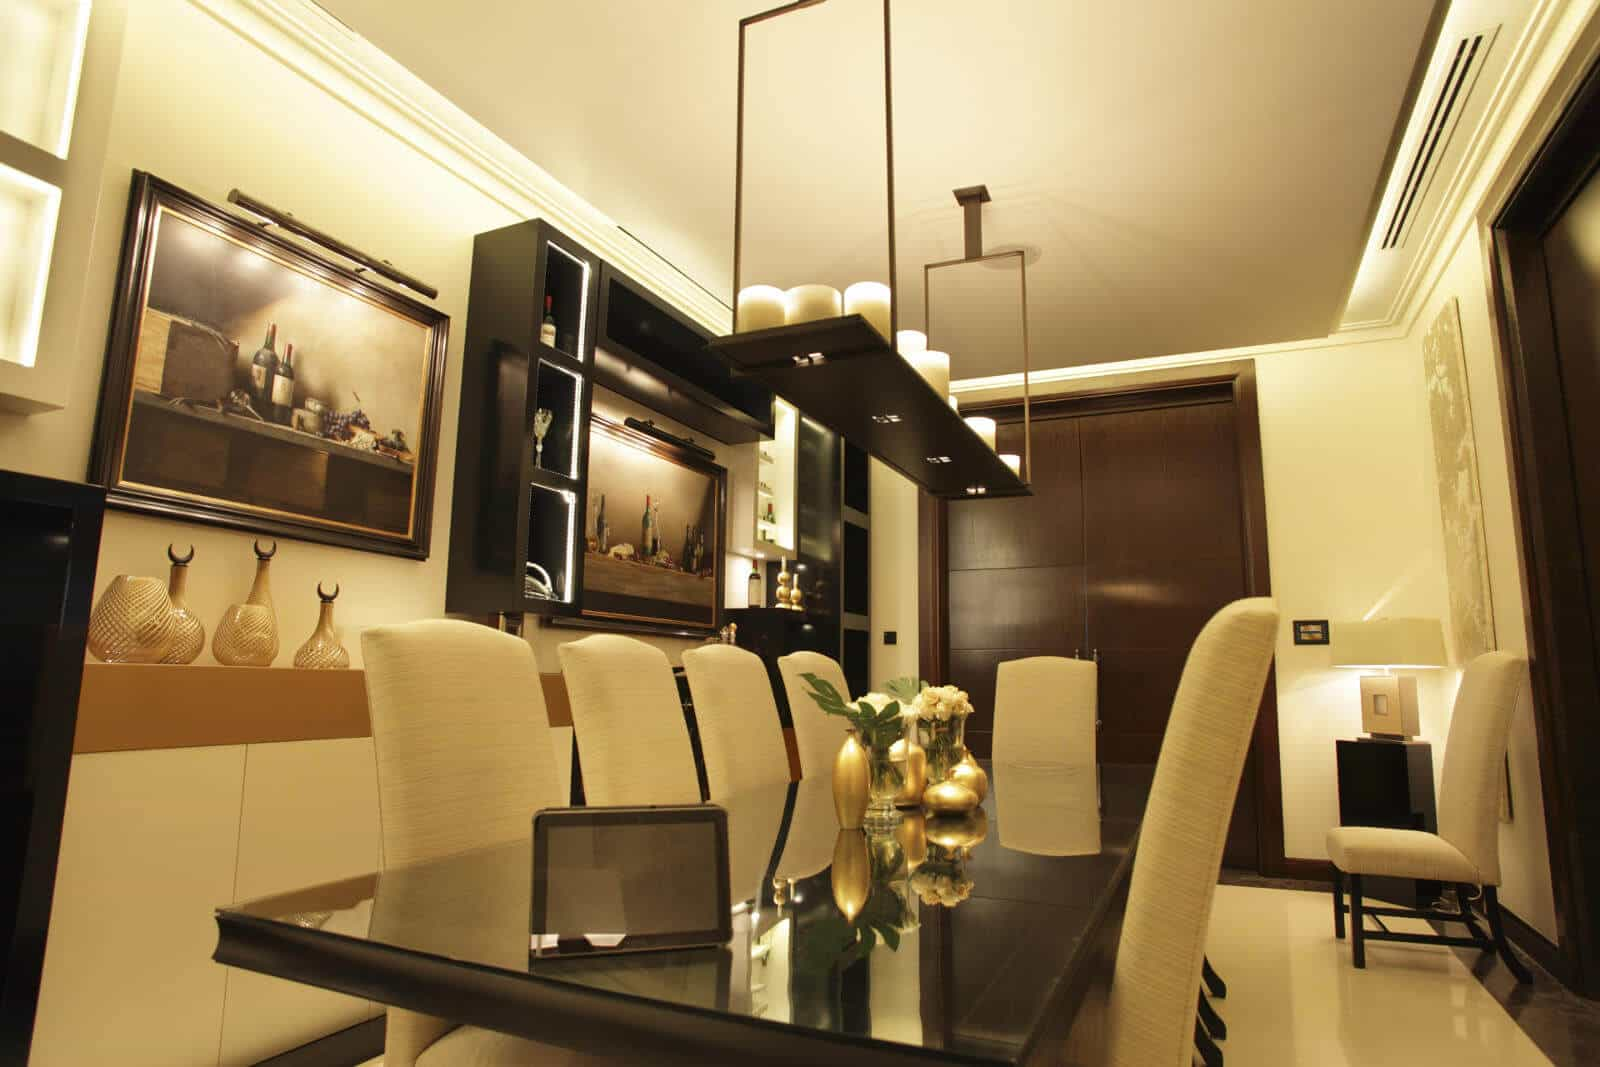 Crestron Lighting Control in Dining Room